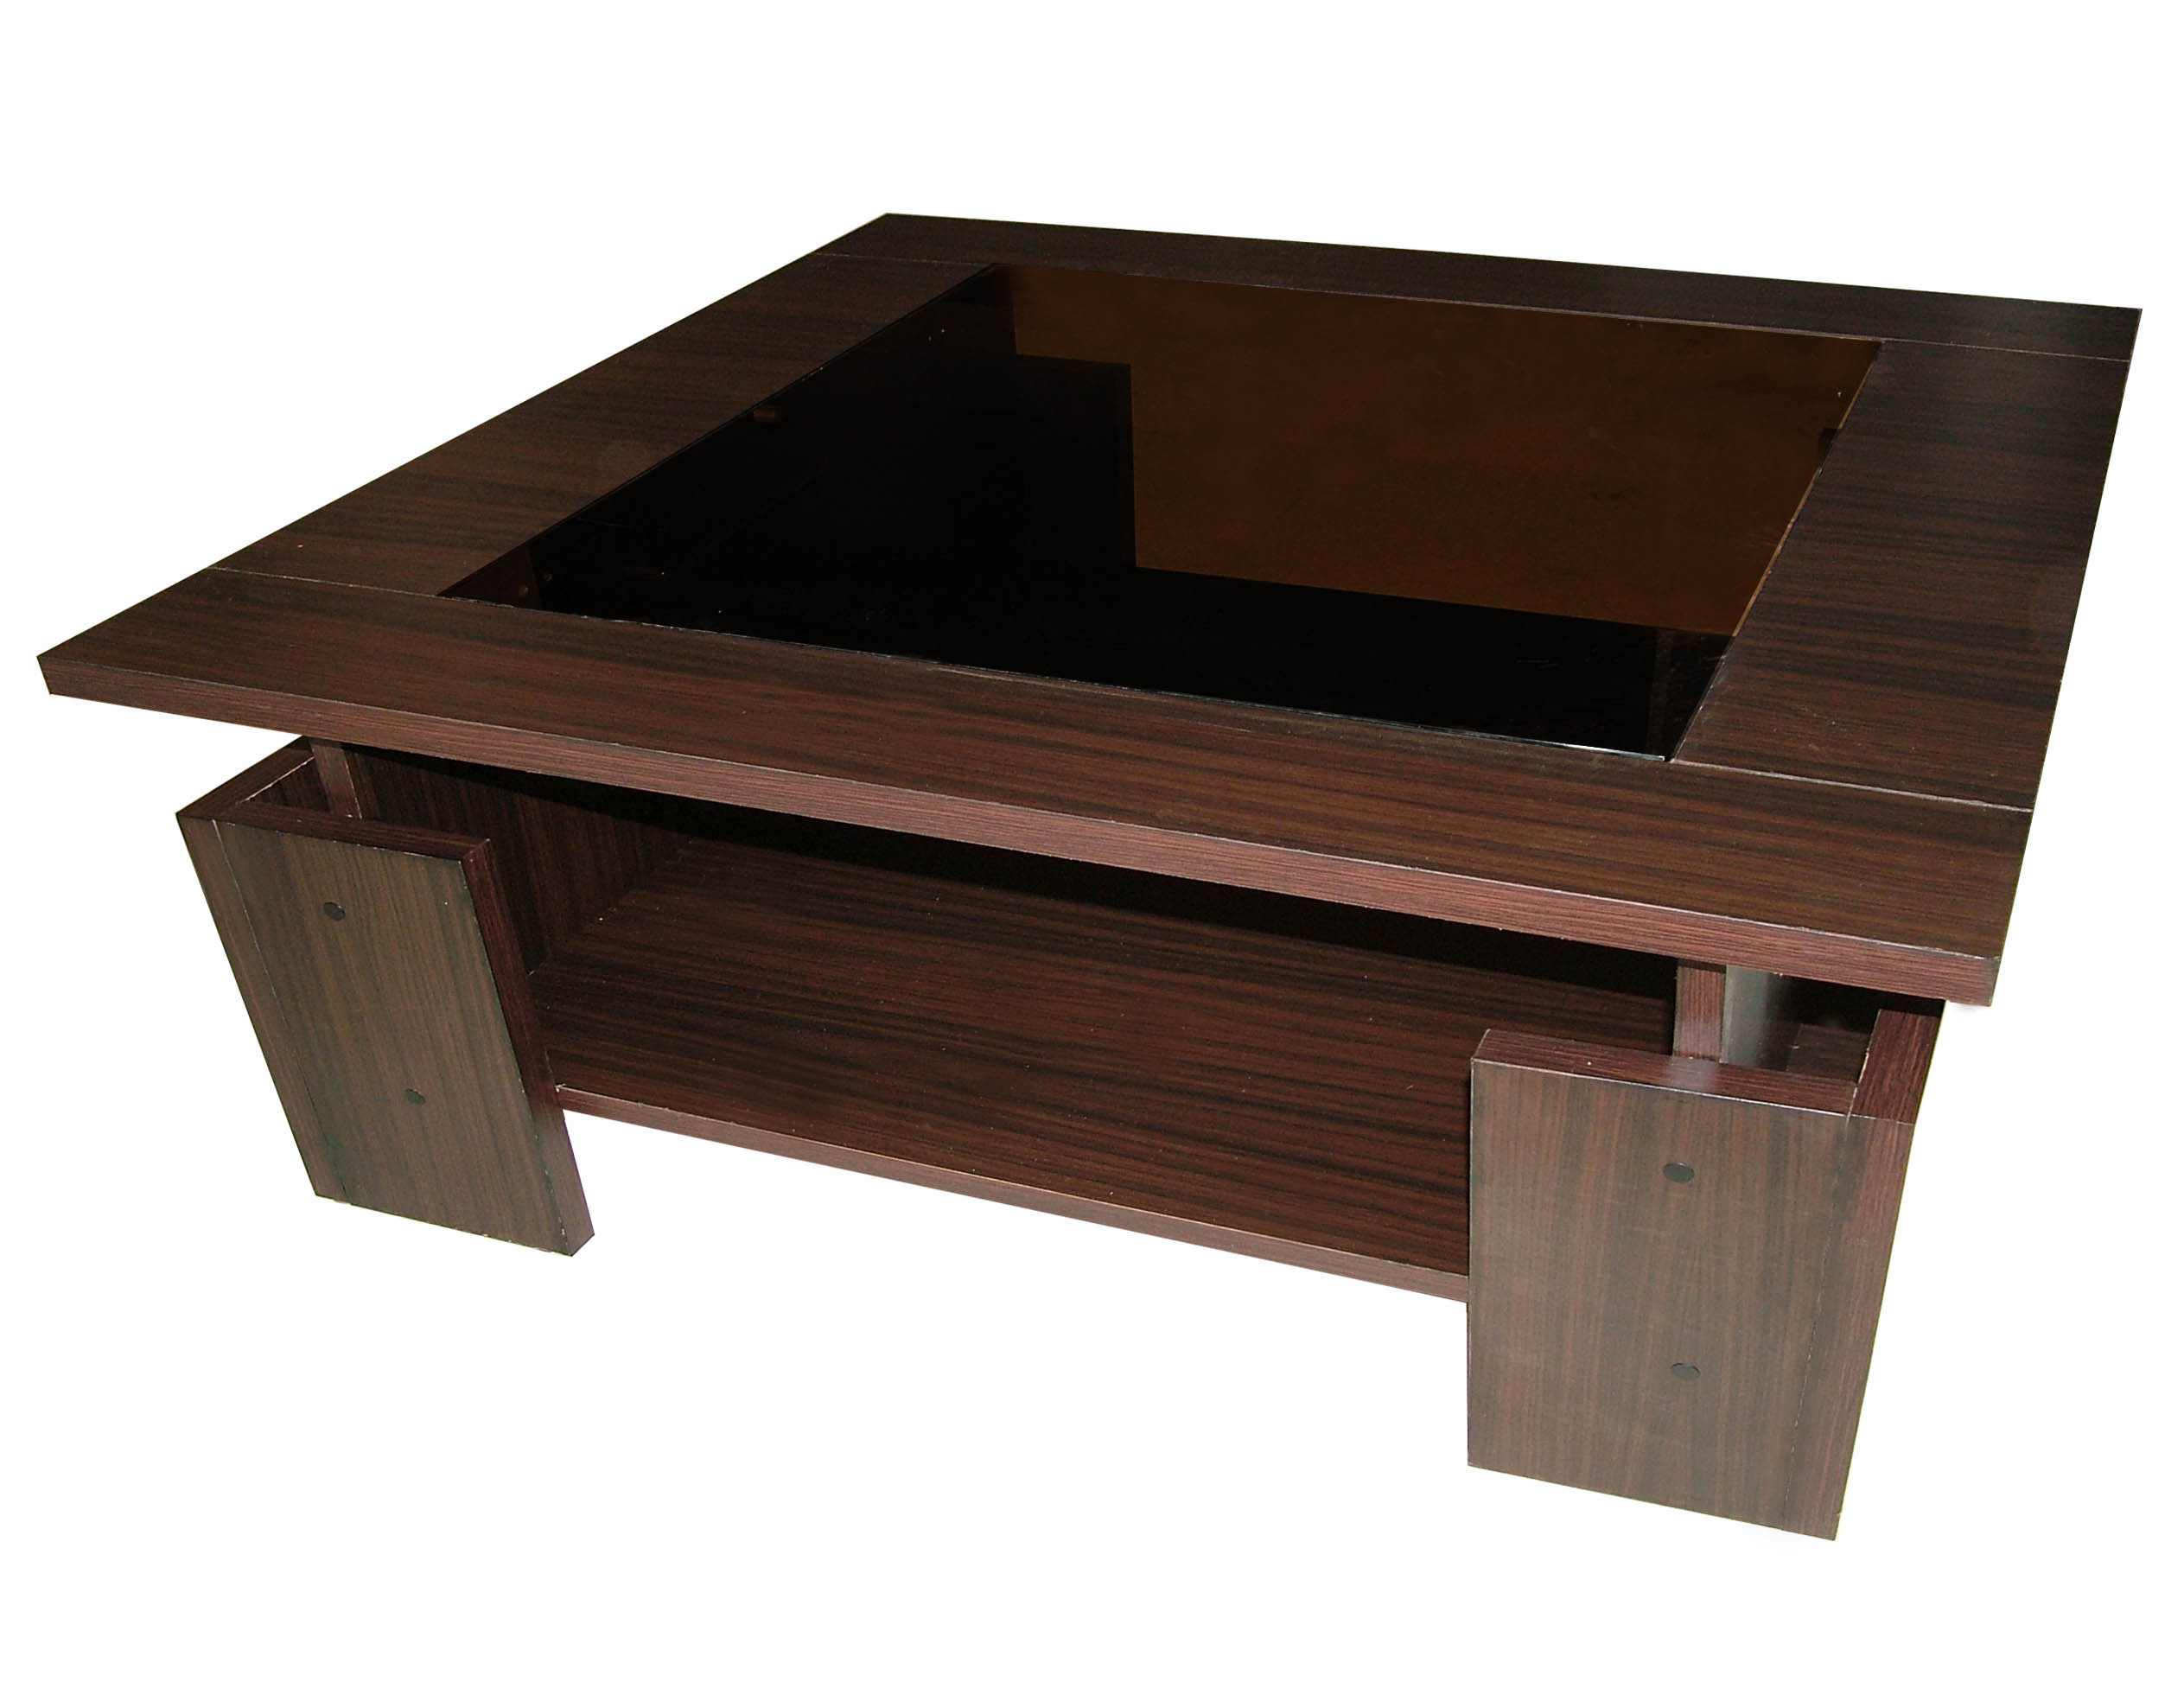 Table basse de bureau Confiram